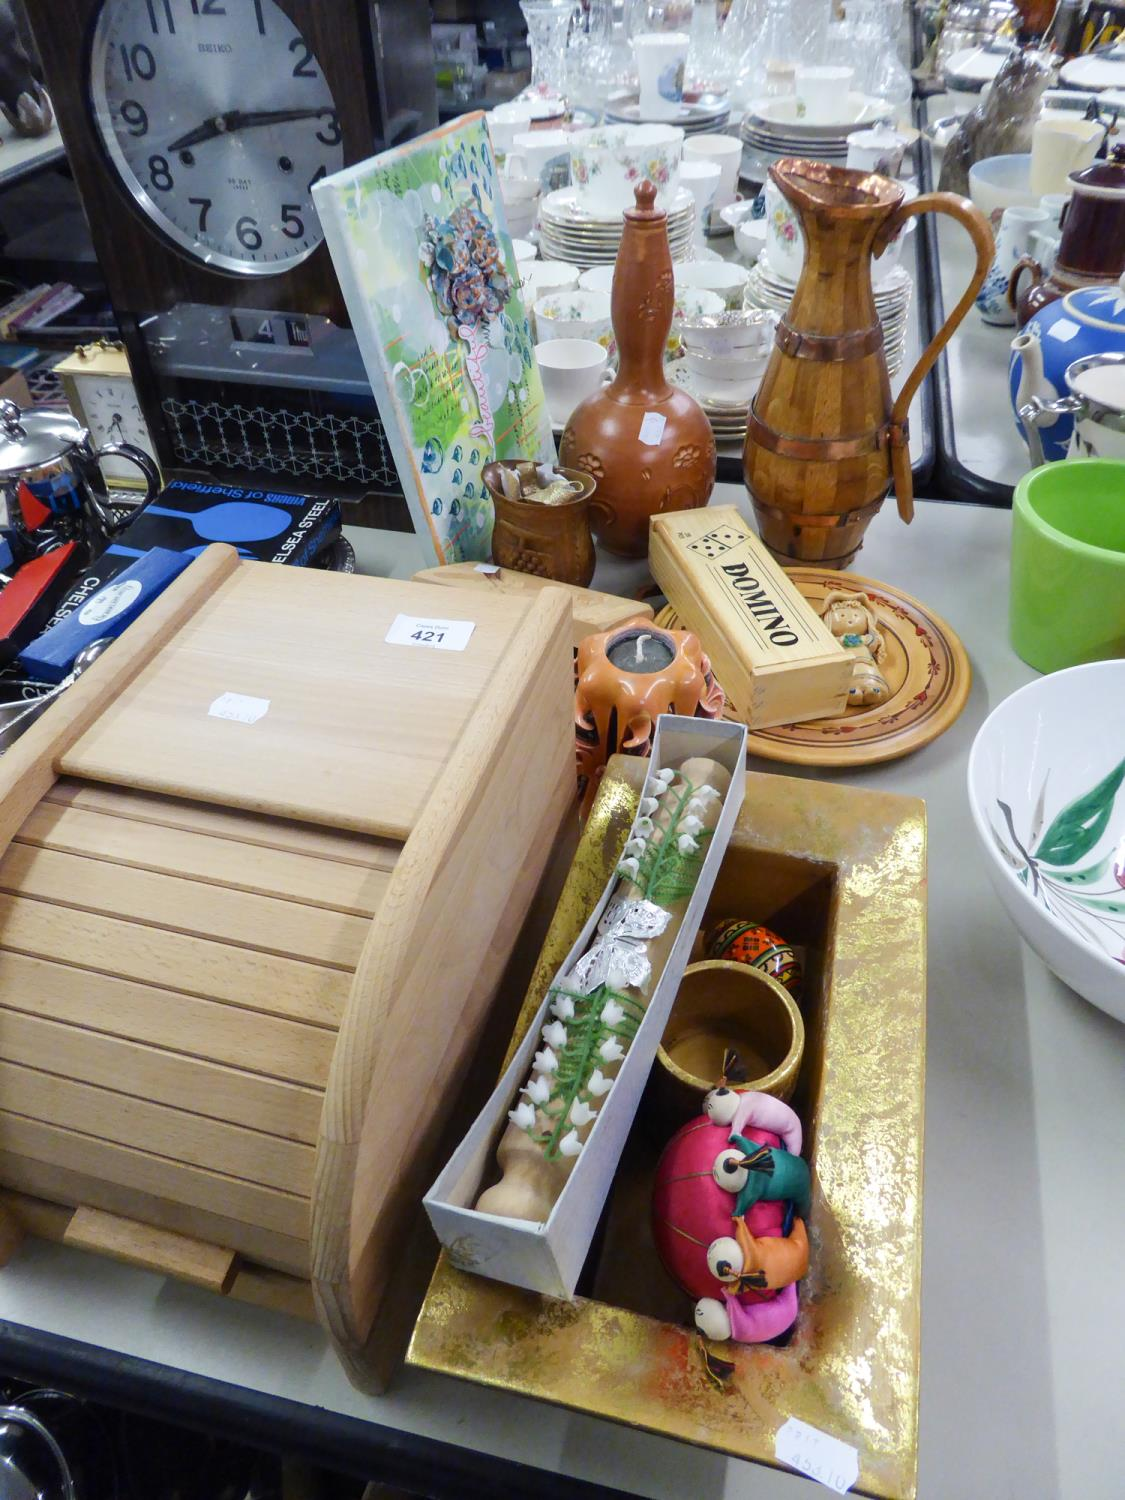 Lot 421 - SELECTION OF WOODEN ITEMS, WATER JUG, SMALL BREAD BIN ETC....